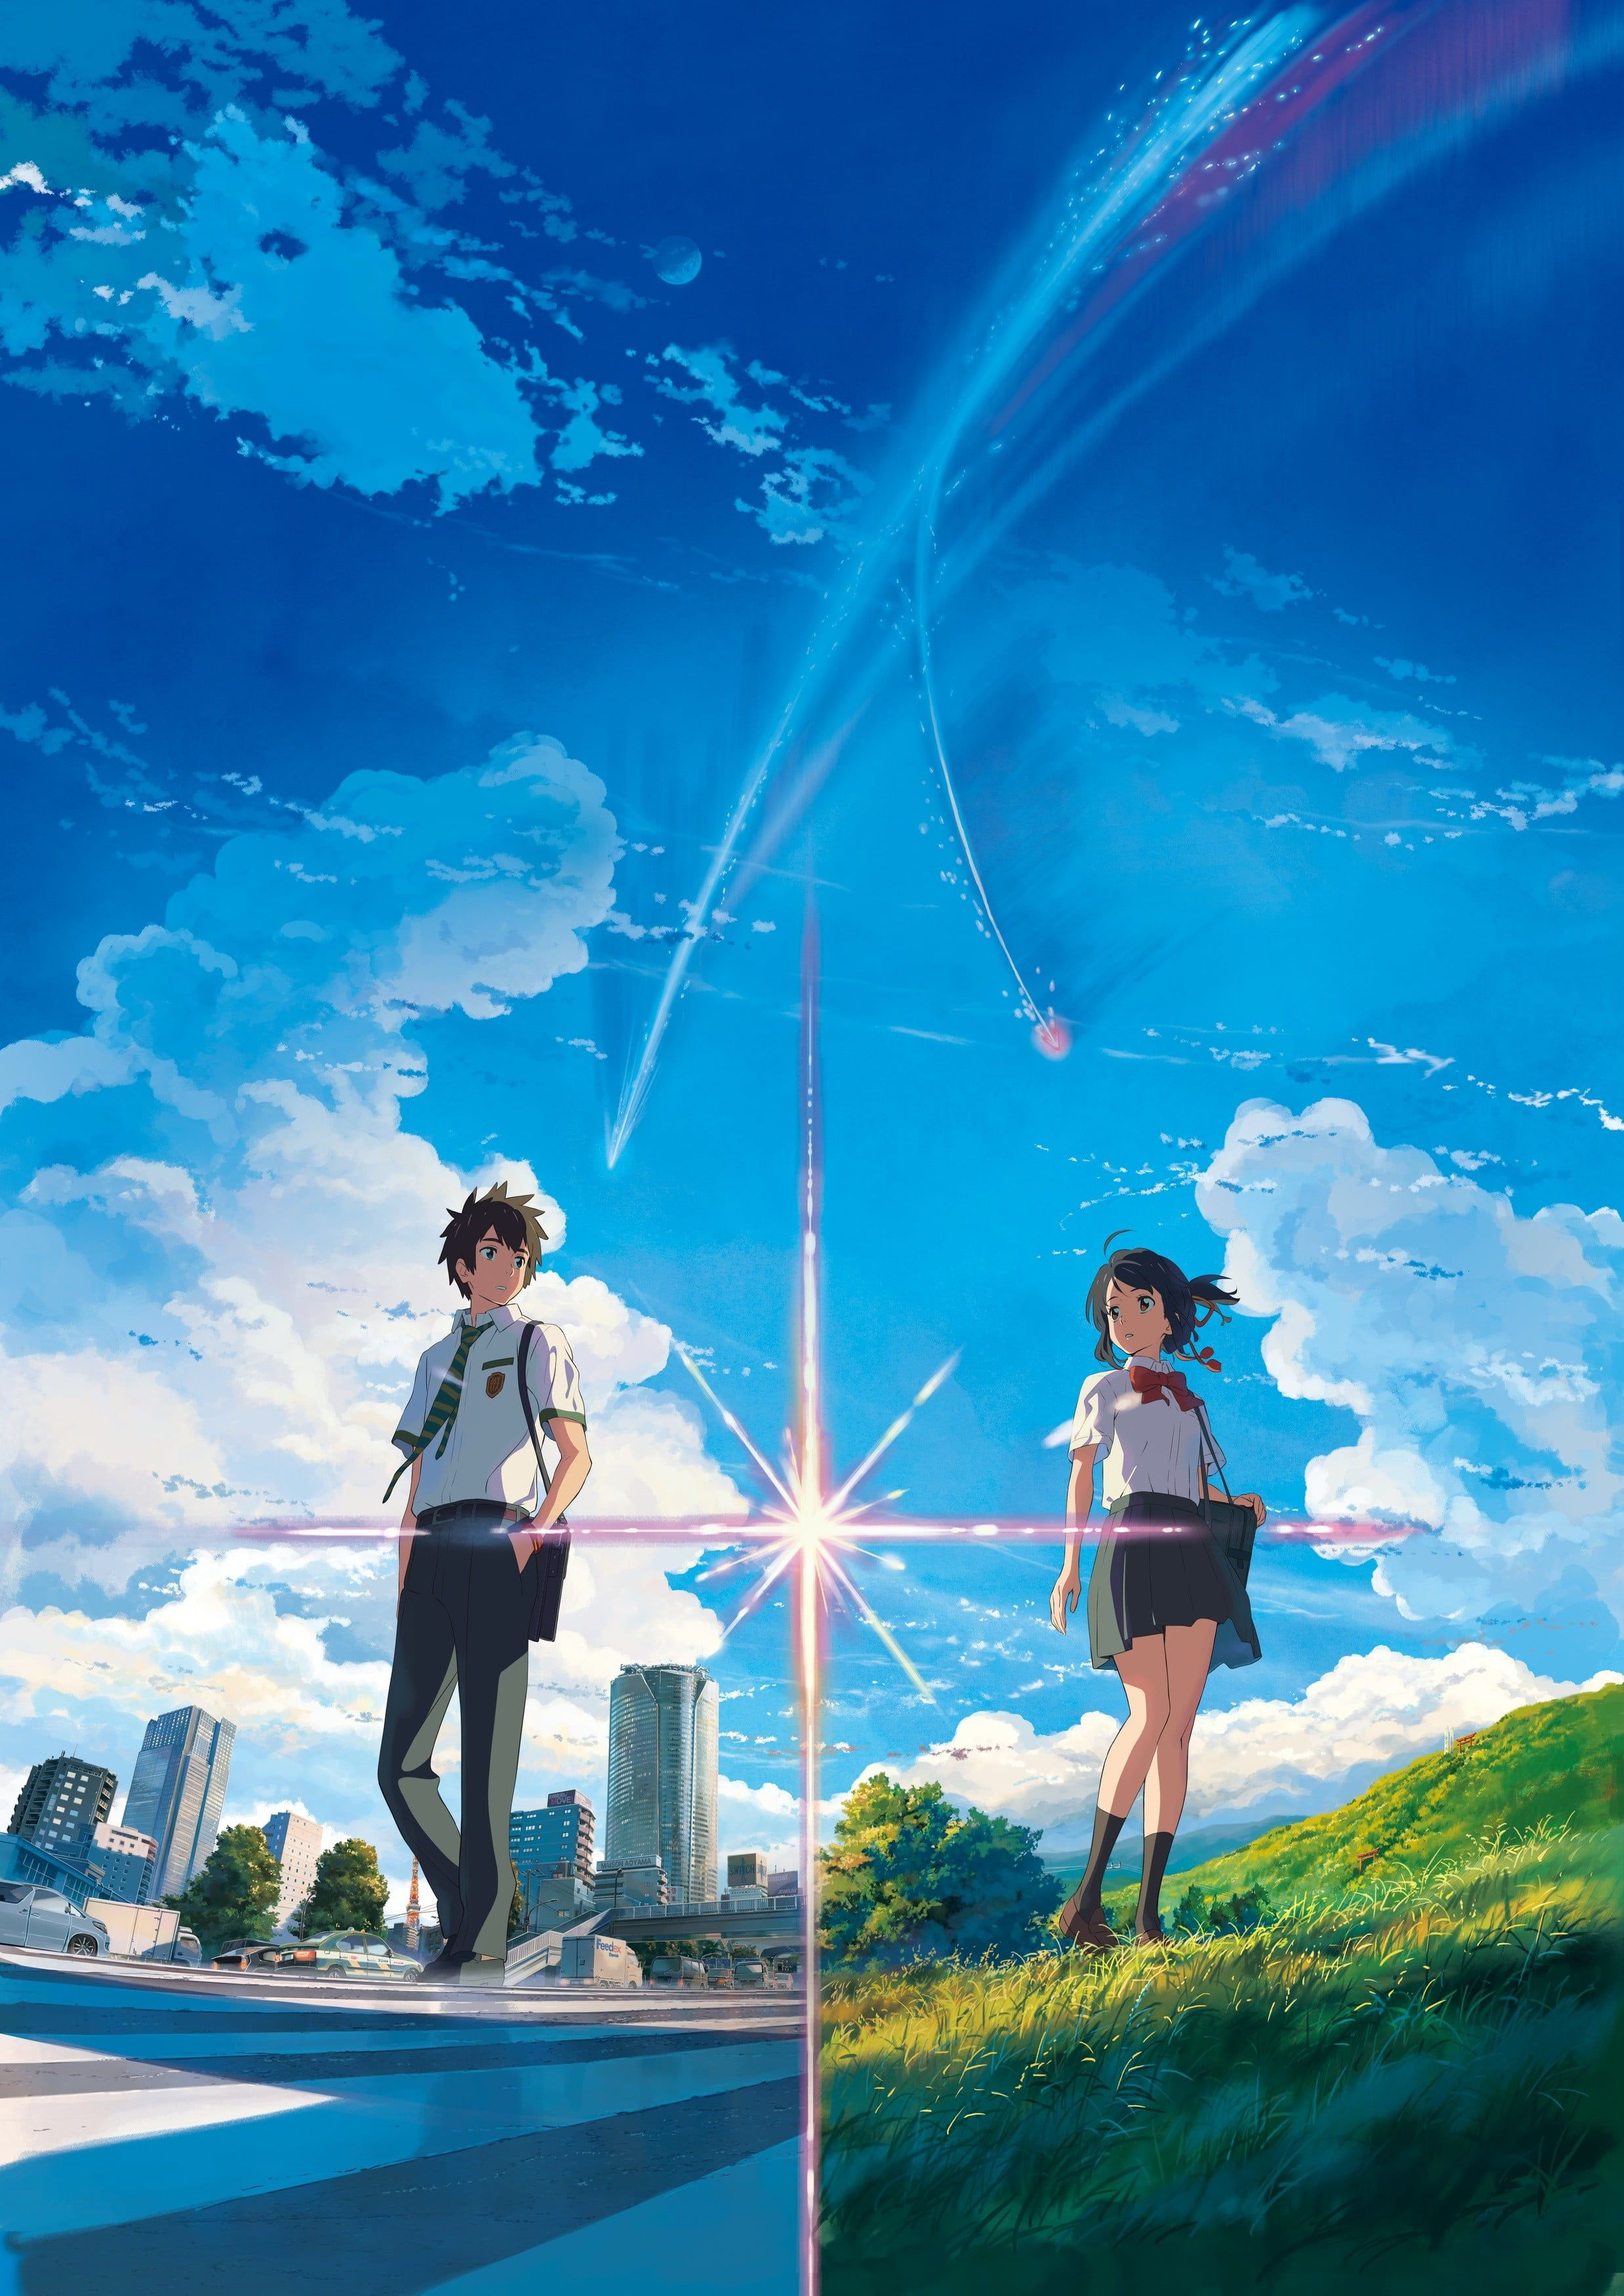 Your Name anime characters #anime anime girls #landscape Kimi no Na Wa Miyamizu Mitsuha Tachibana Taki #street #grass #skirt #knee-highs #clouds #sky #2K #wallpaper #hdwallpaper #desktop